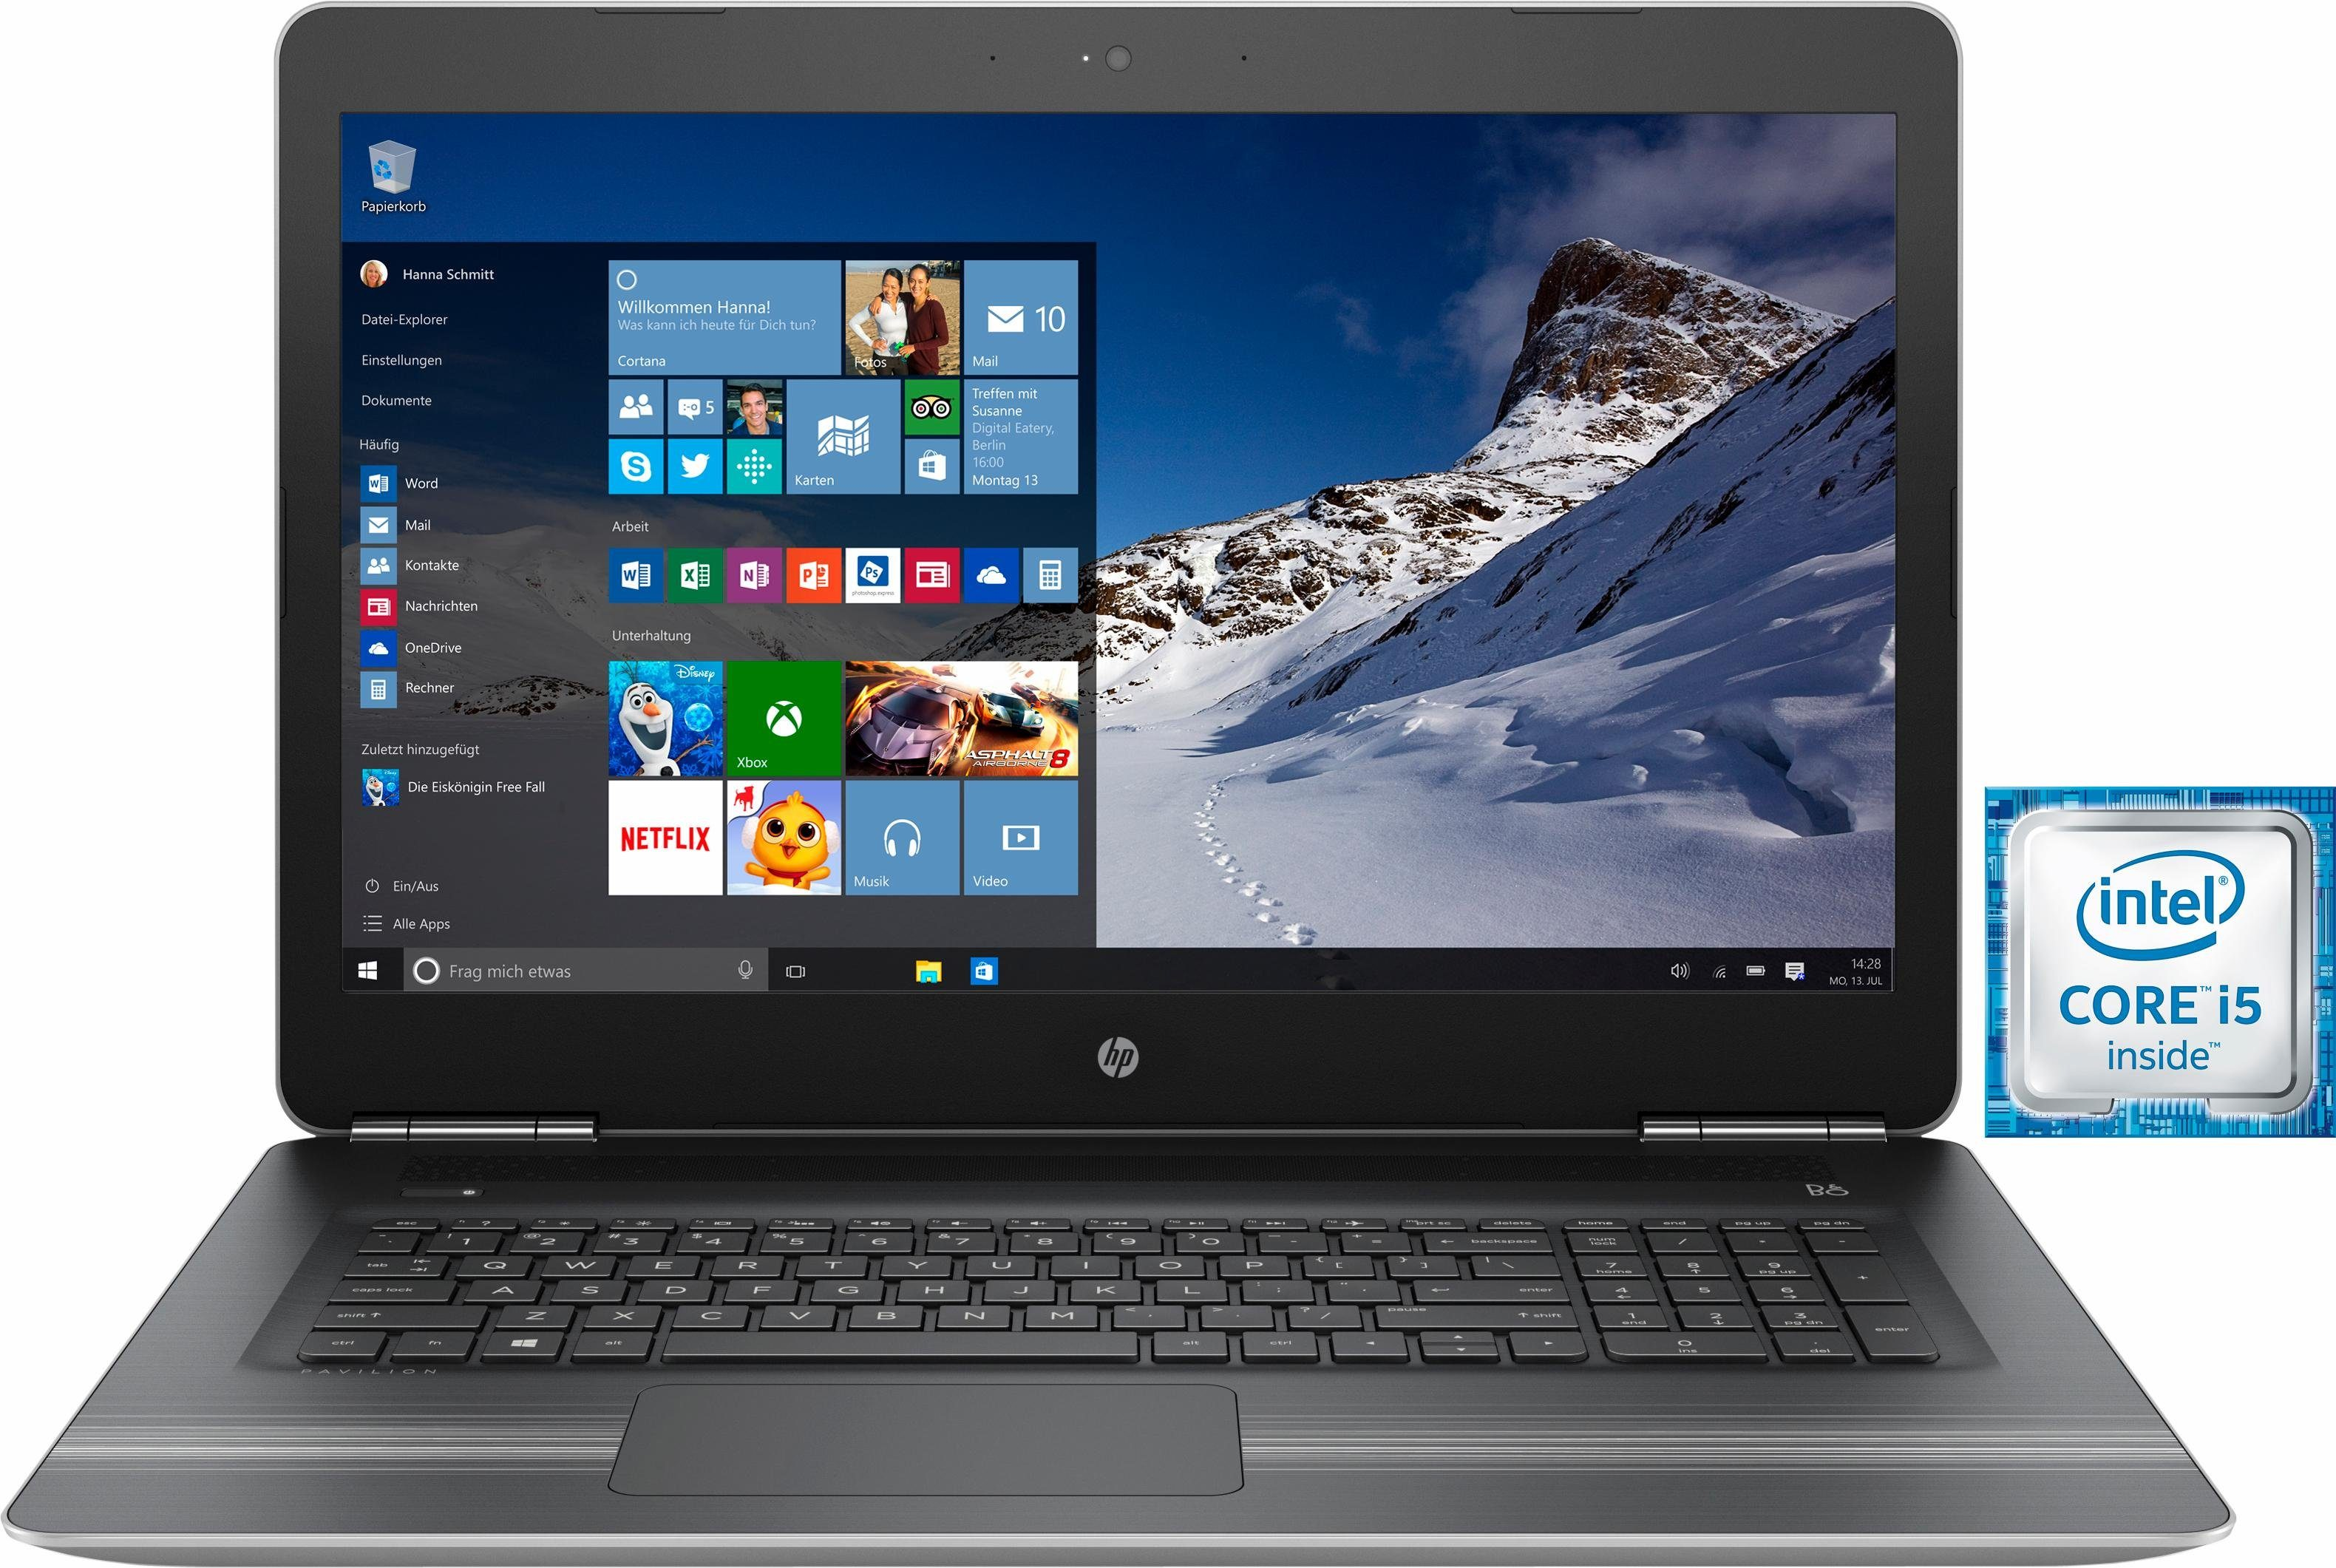 HP Pavilion 17-ab002ng Notebook, Intel® Core™ i5, 43,9 cm (17,3 Zoll), 1128 GB Speicher